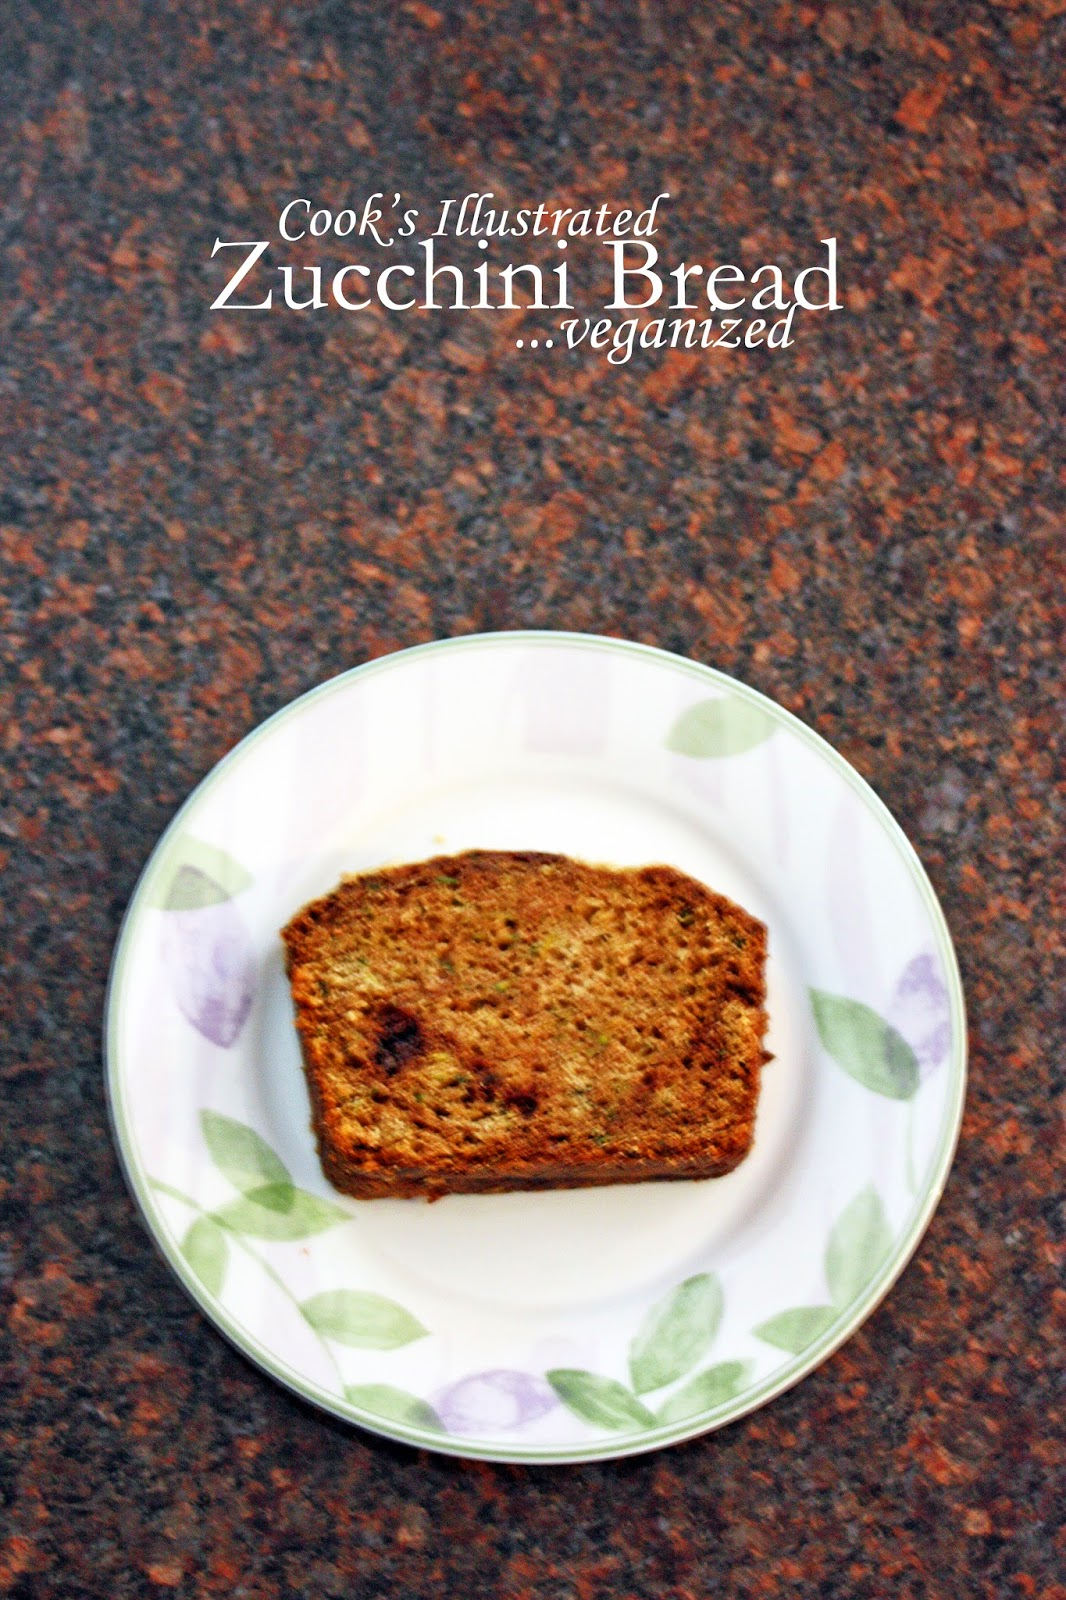 cook's illustrated zucchini bread, vegan recipe